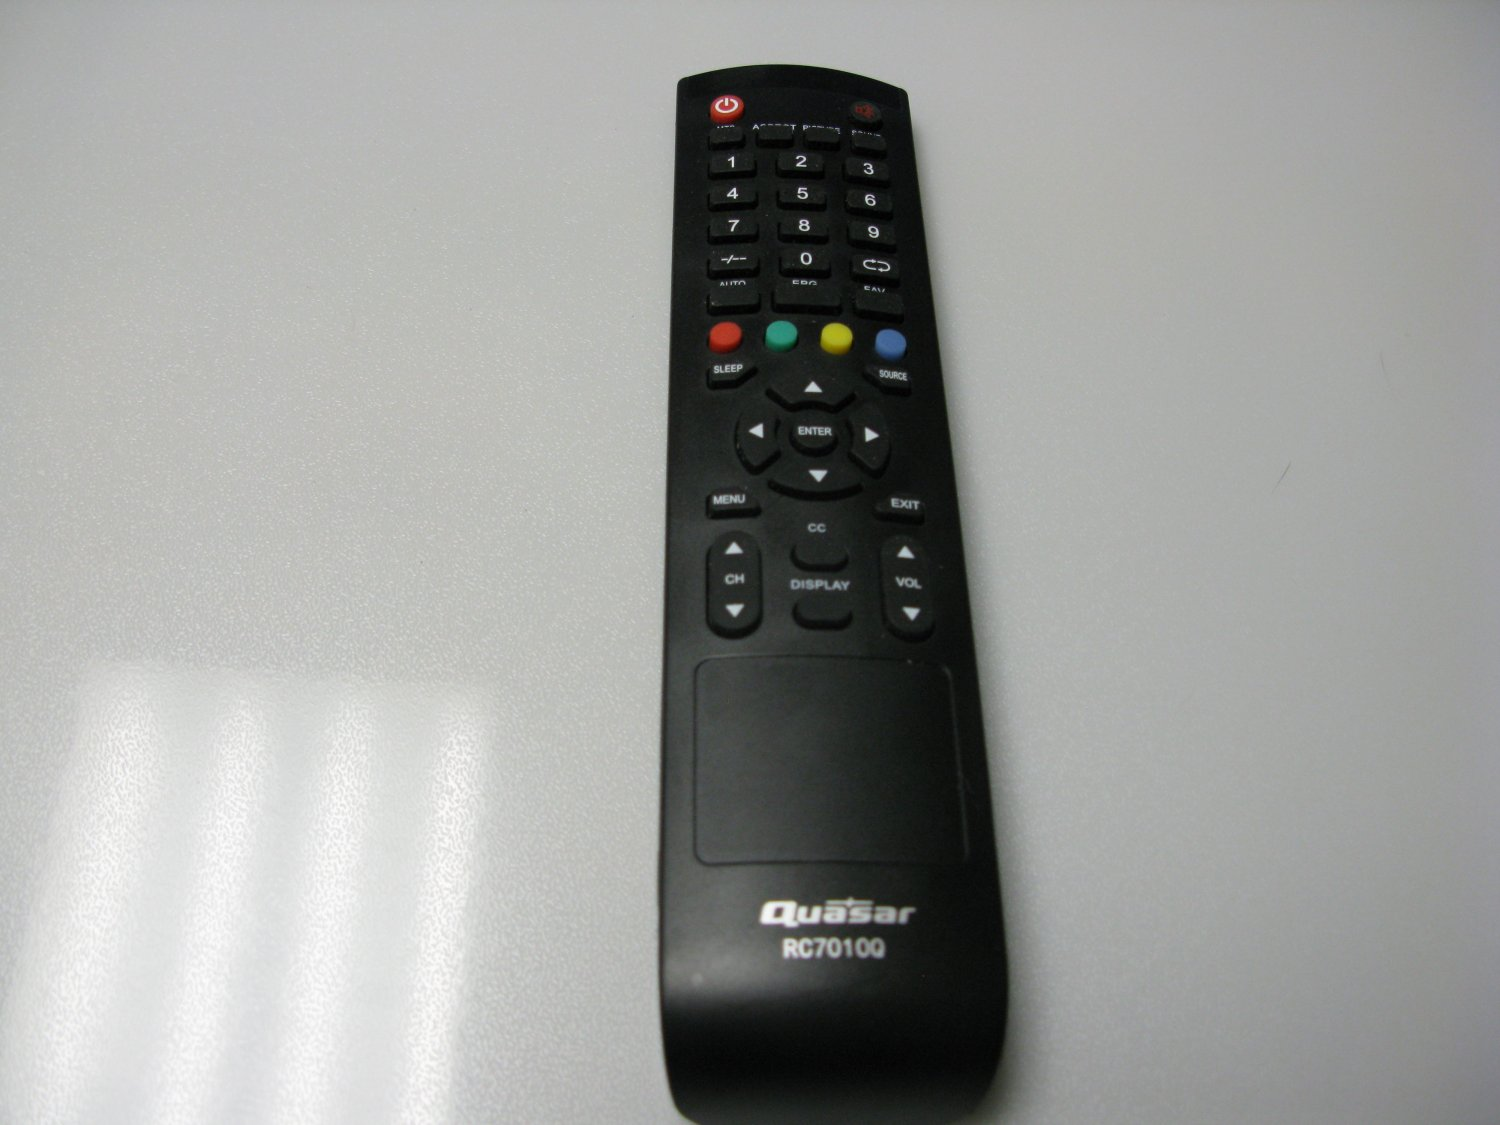 Quasar TV Remote Control RC7010Q